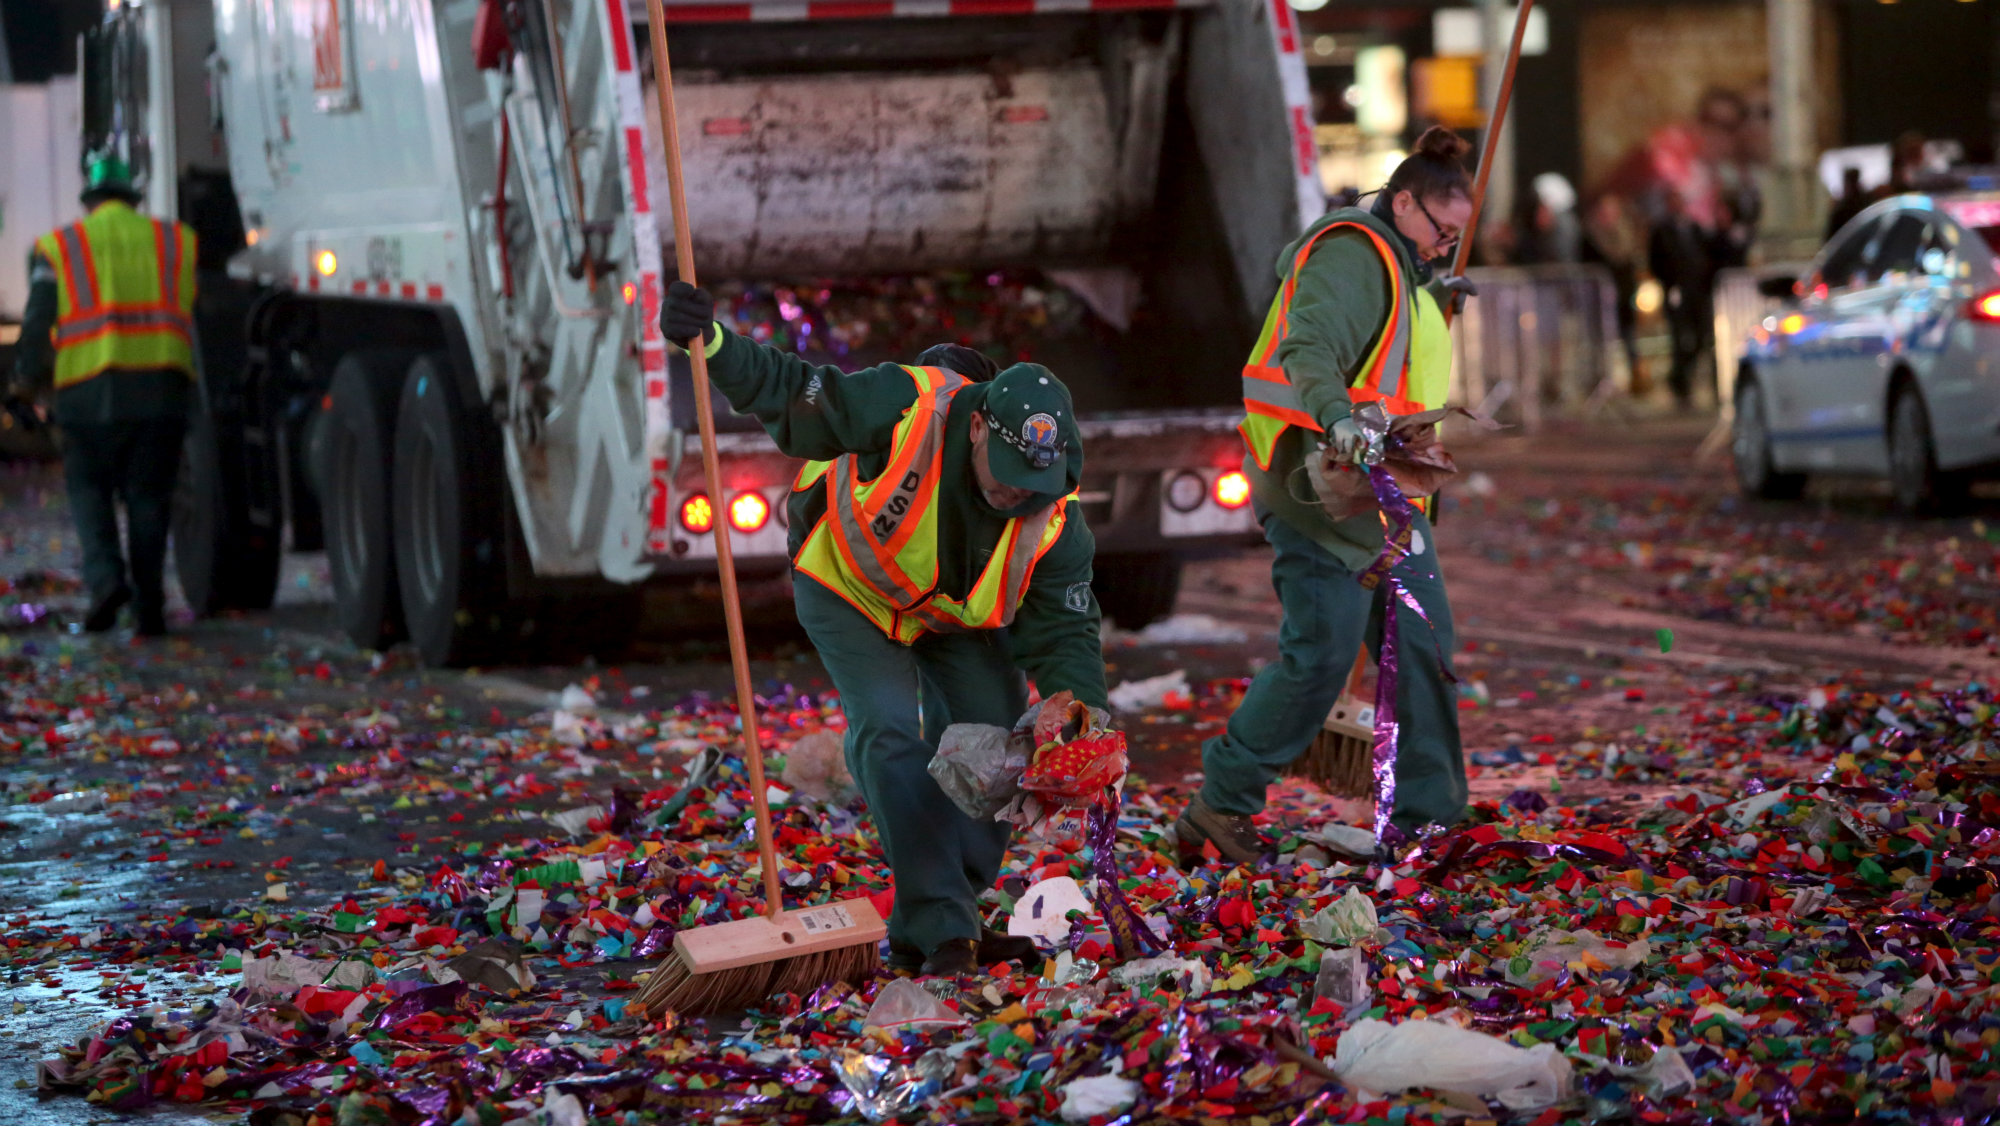 Sanitation workers clean up confetti following New Year celebrations in Times Square in the Manhattan borough of New York January 1, 2016.